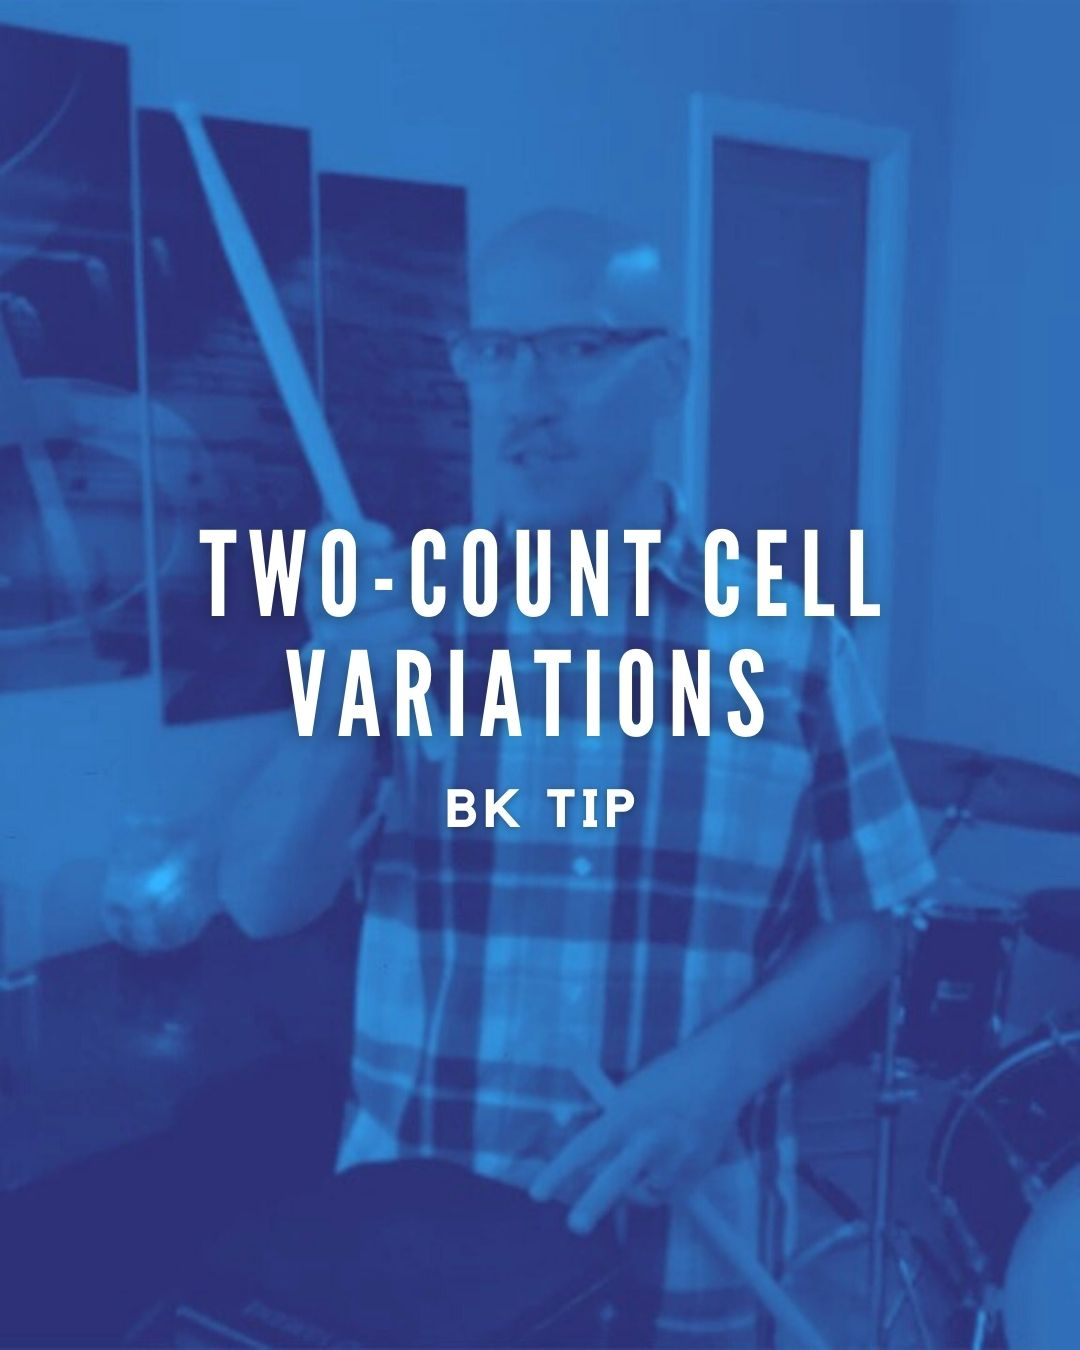 Two-Count Cell Variations